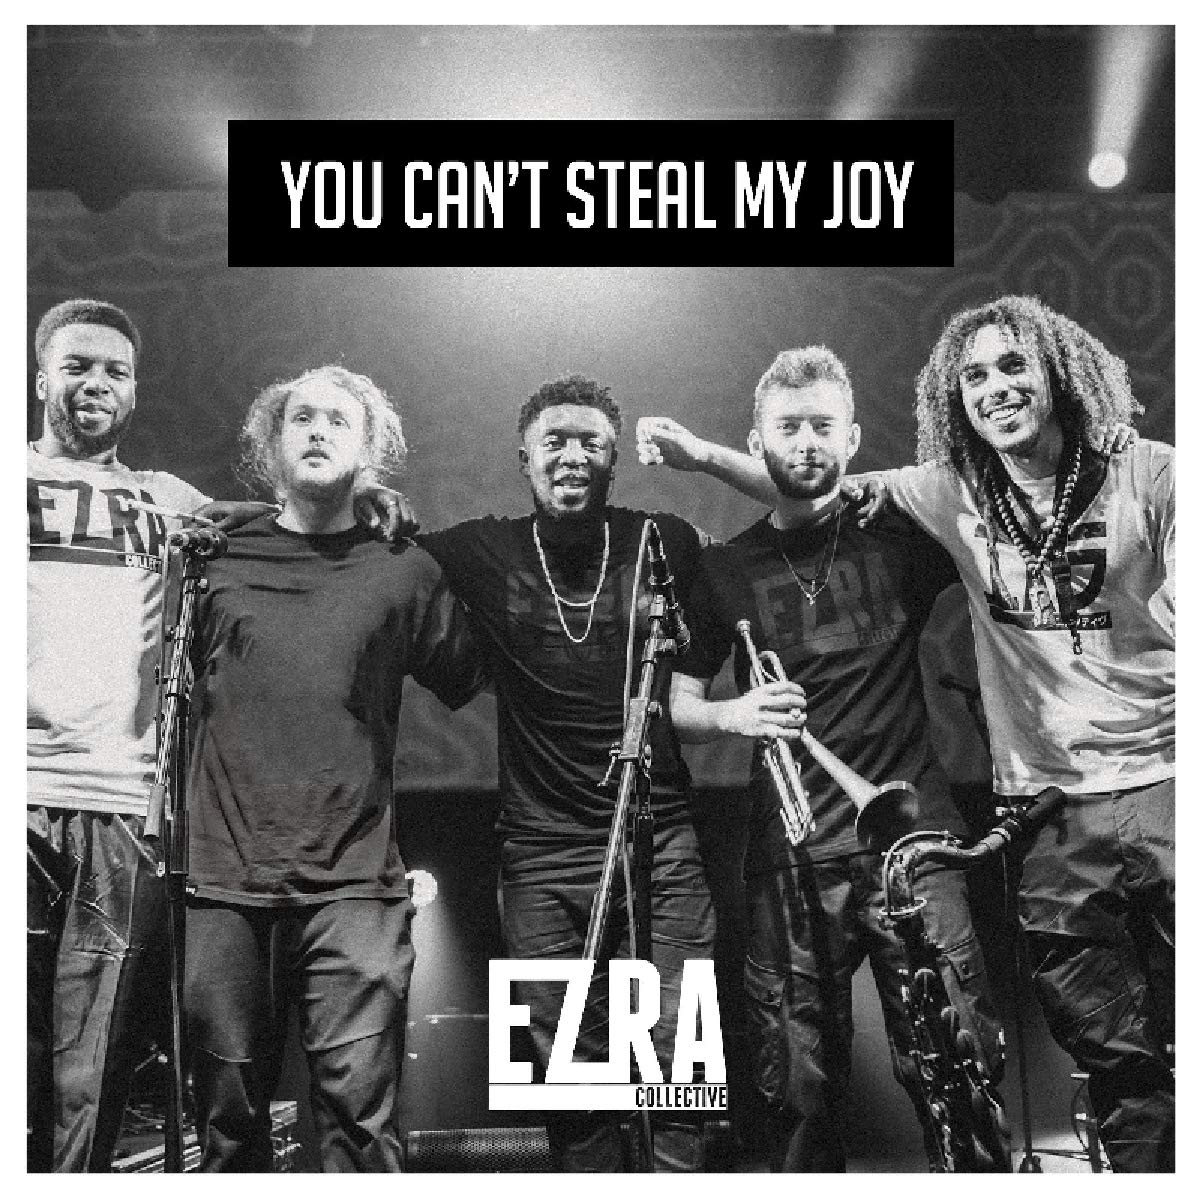 EZRA COLLECTIVE - You Can't Steal My Joy cover